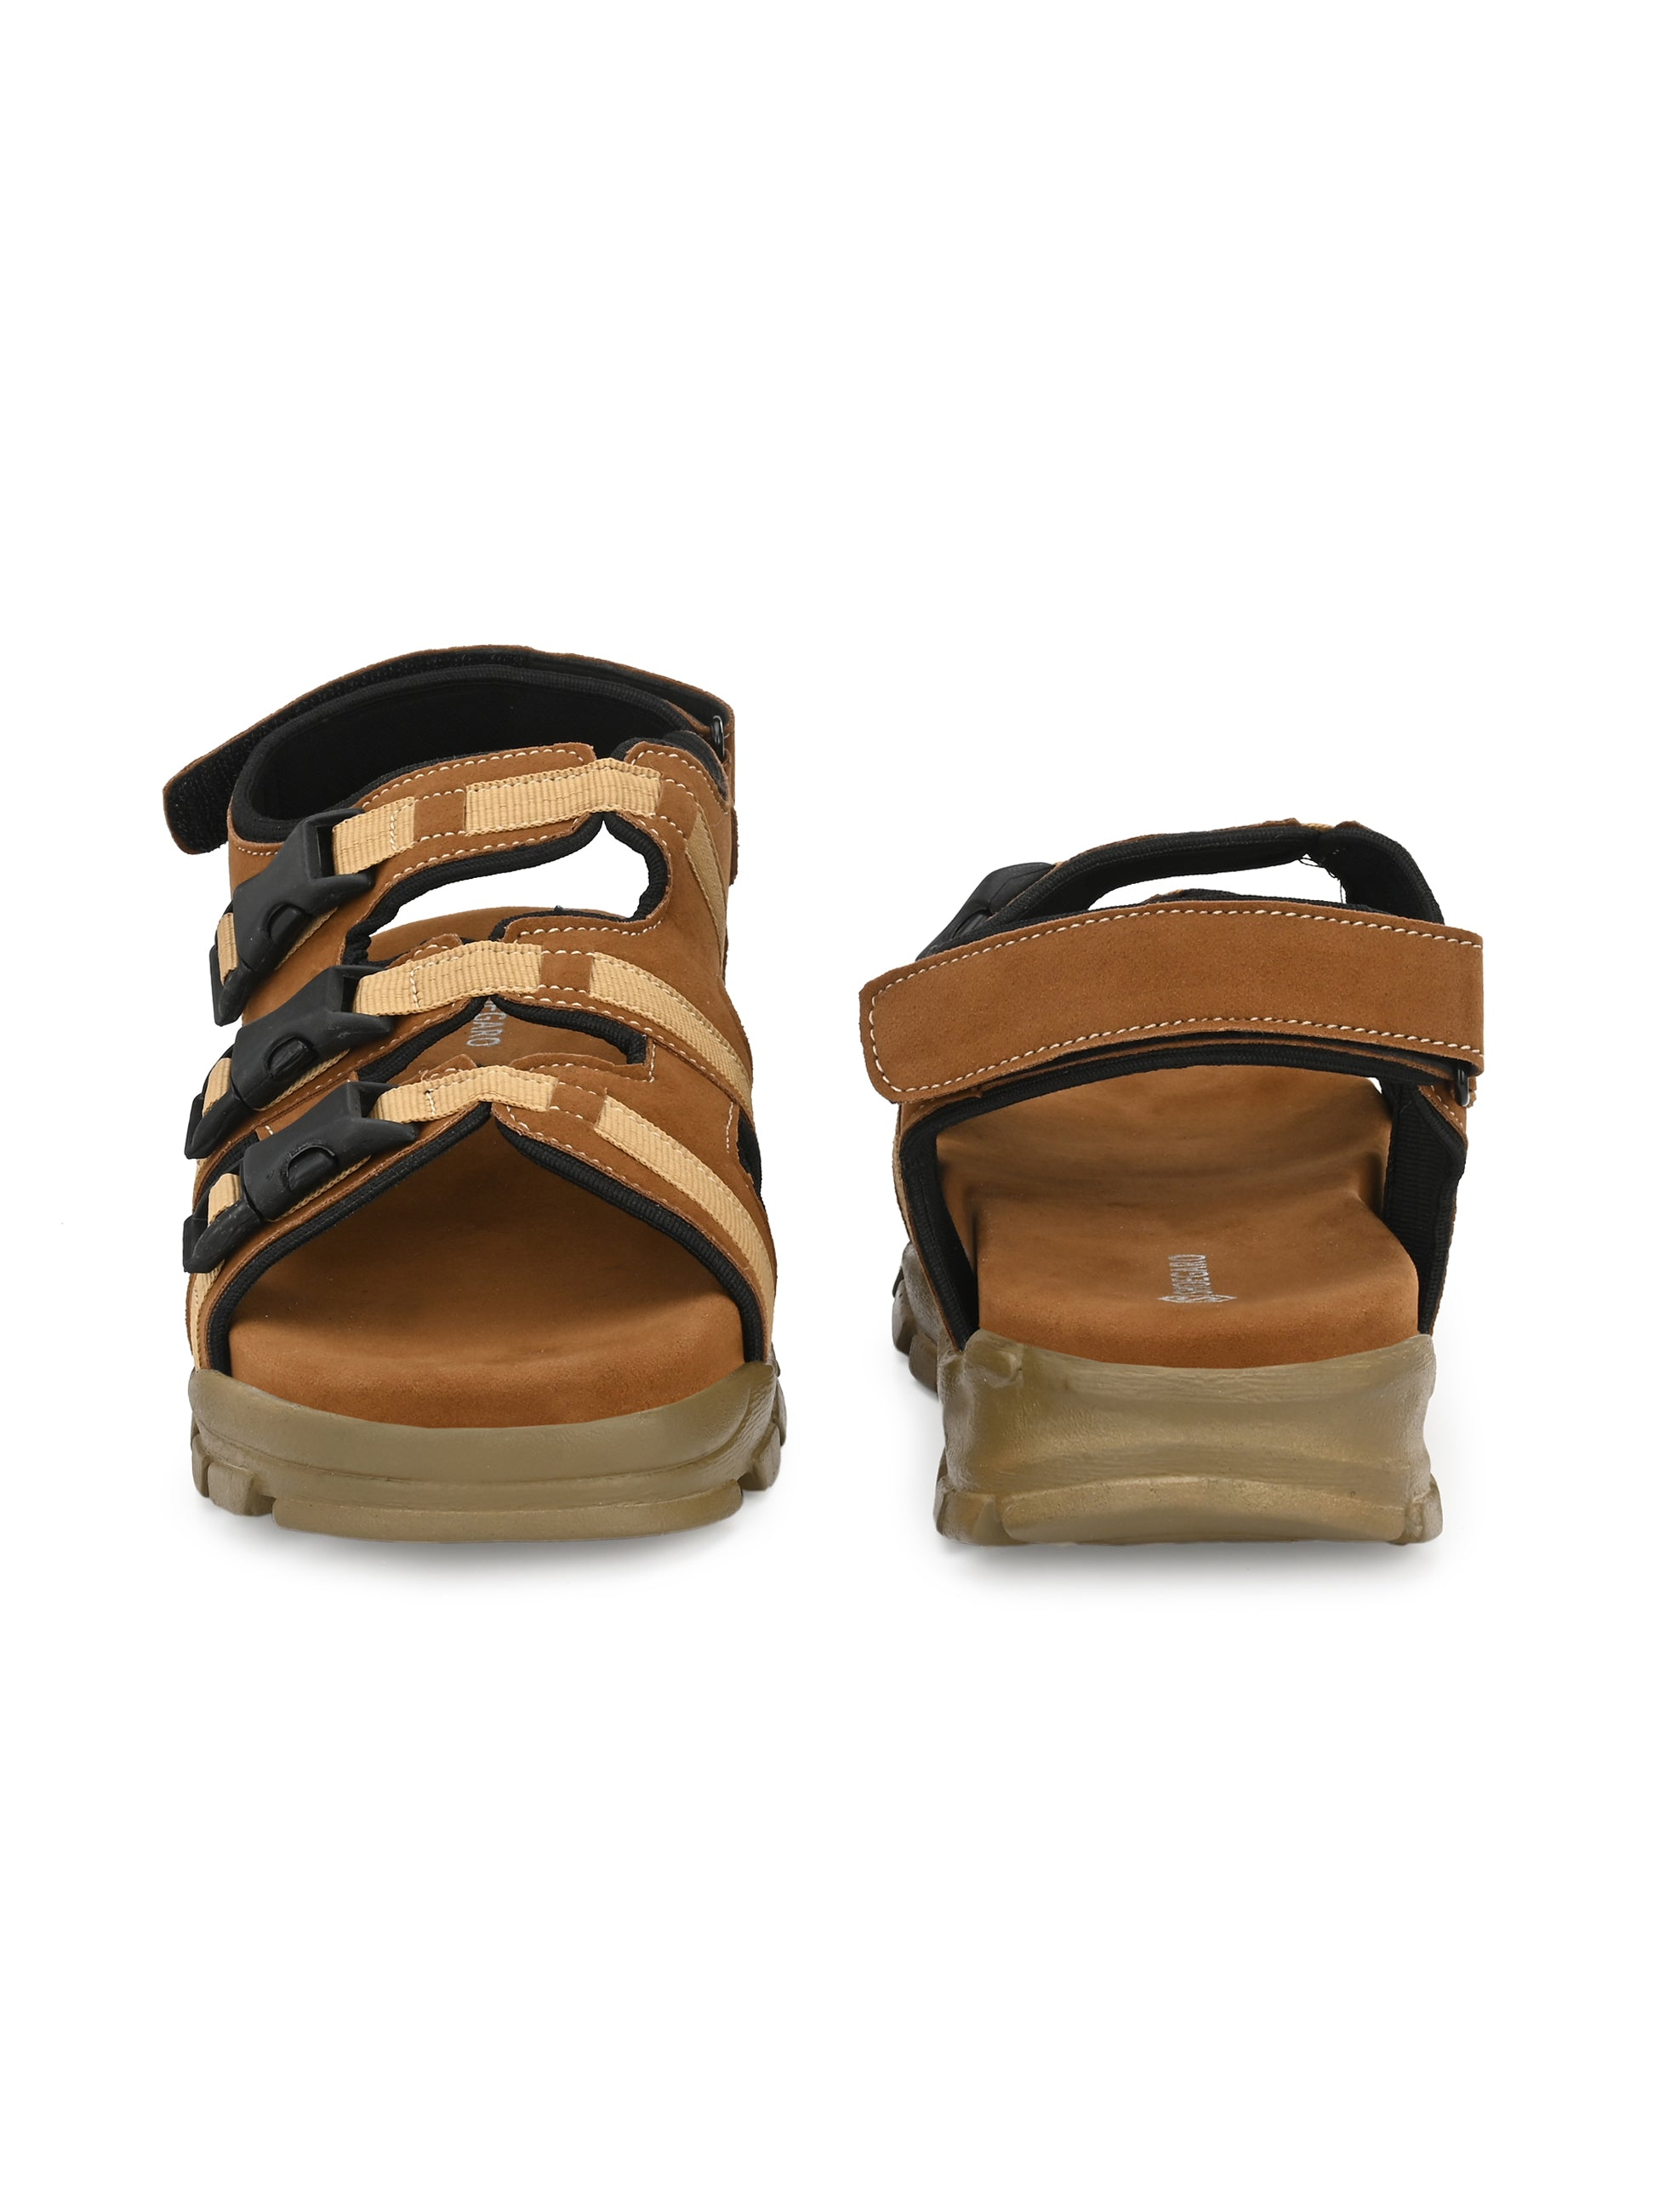 Swift Tan Comfort Sandal - shoegaro